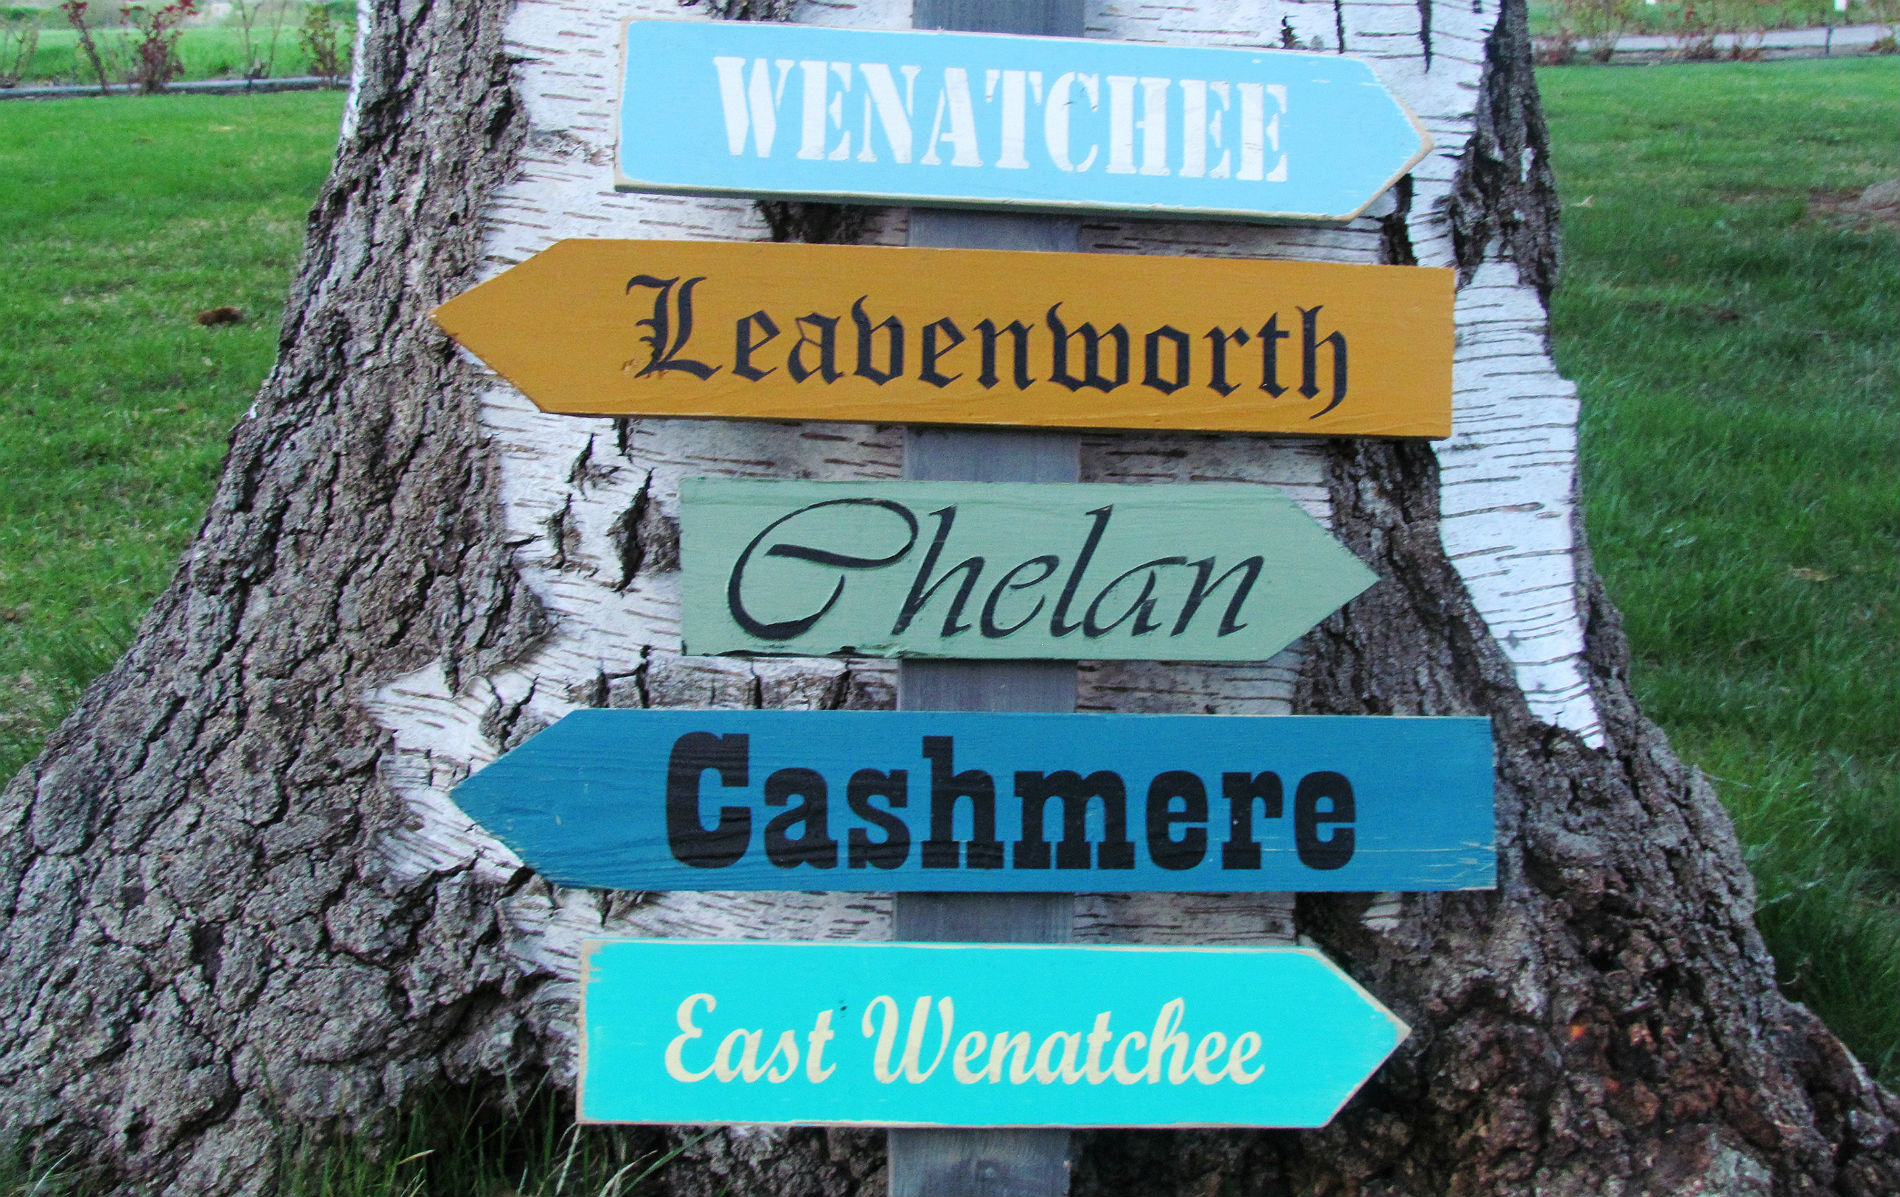 Wooden sign leaning against a tree pointing directions to Wenatchee, Leavenworth, Chelan, Cashmere and East Wenatchee